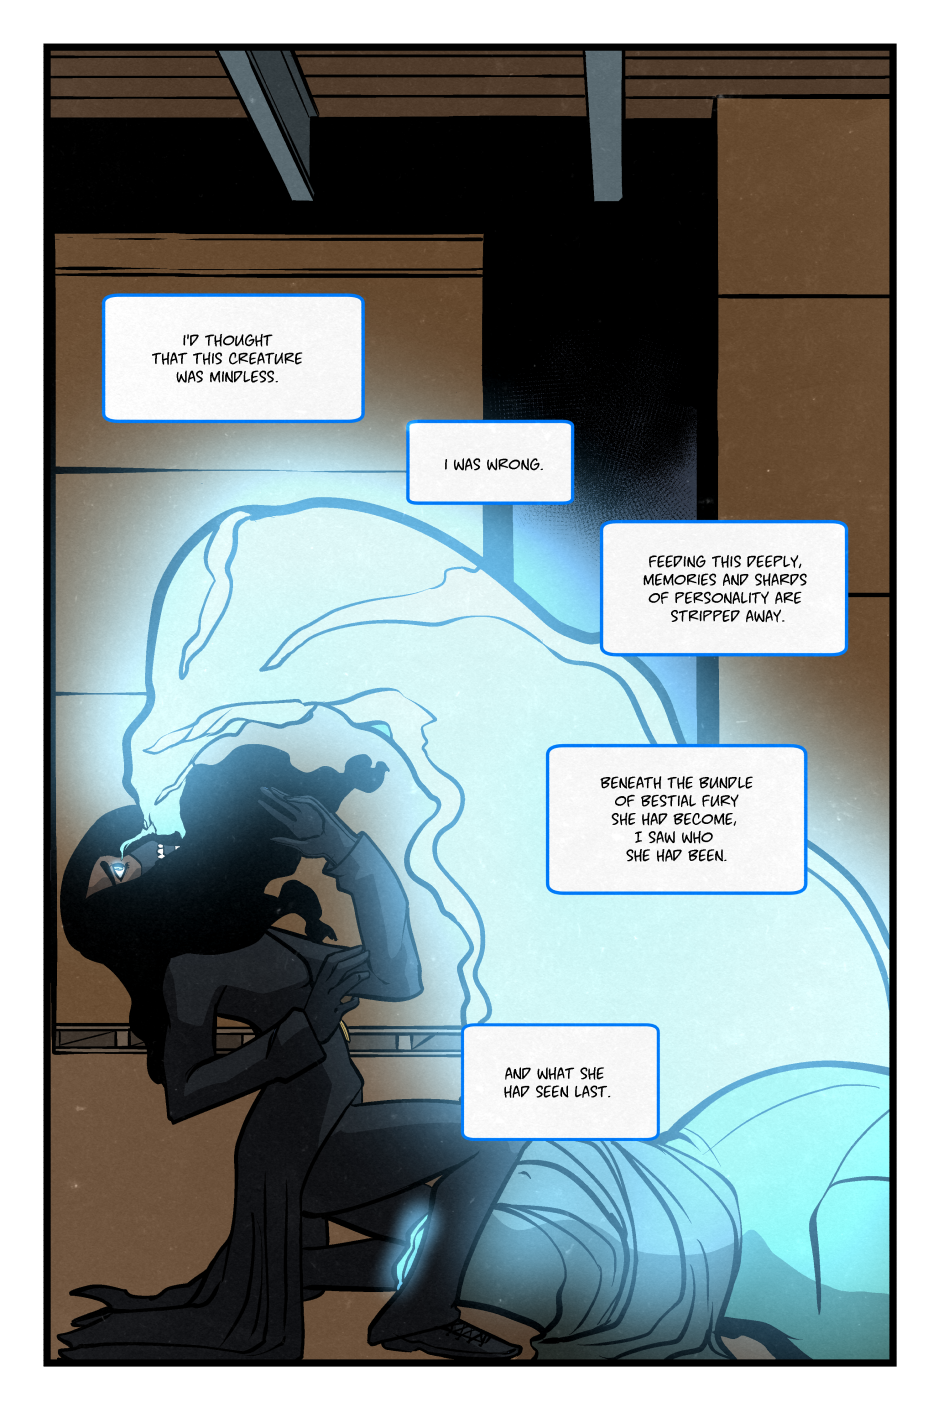 ToW01pg23